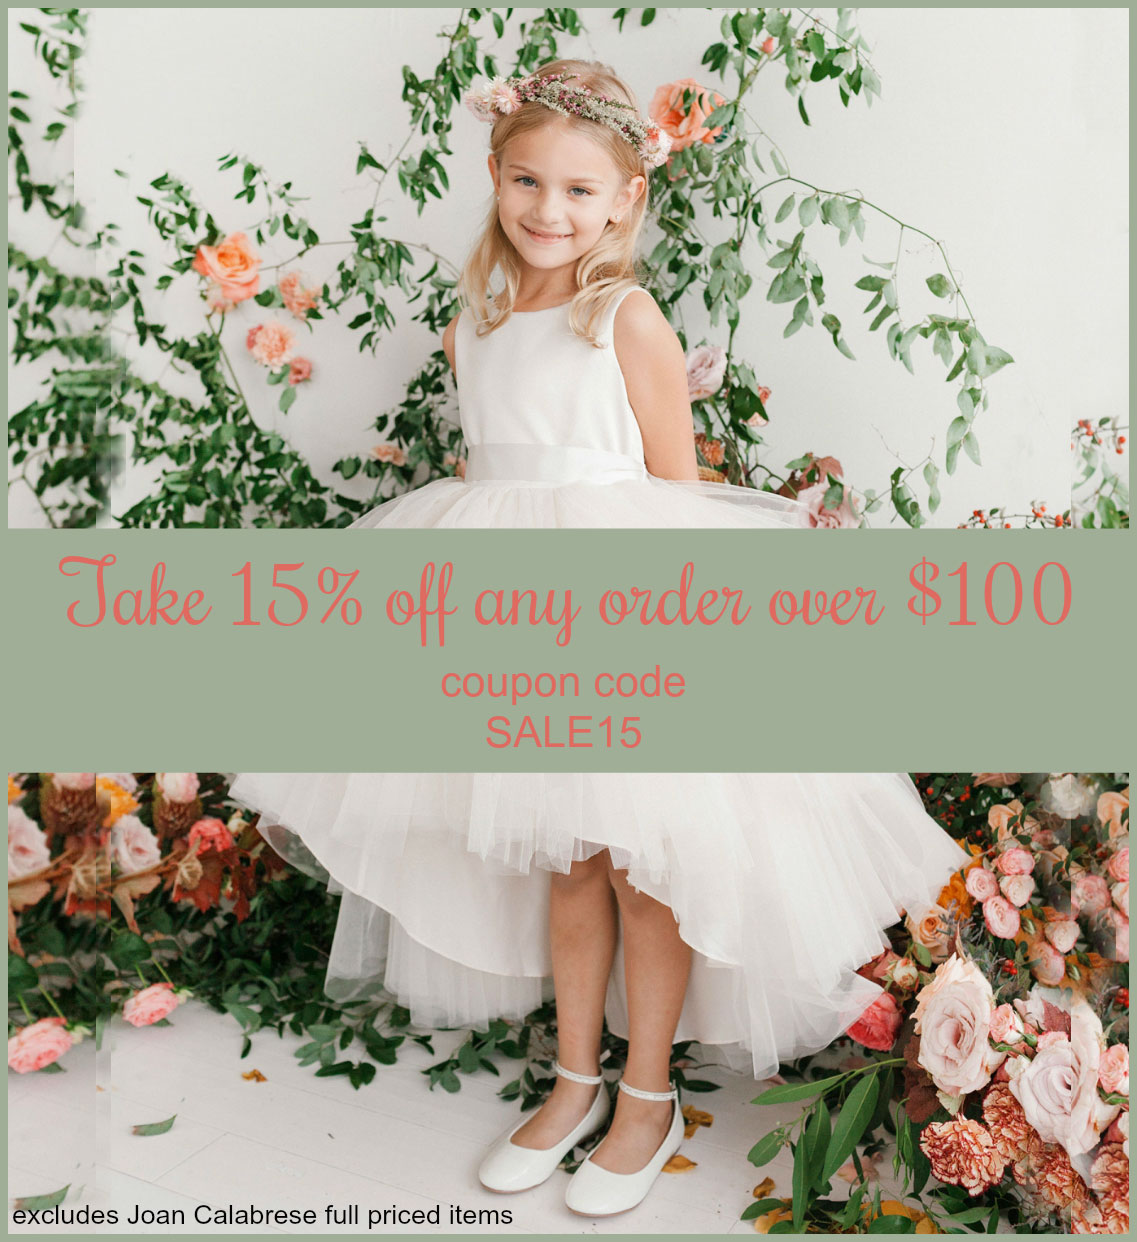 Save 15% on orders over $100